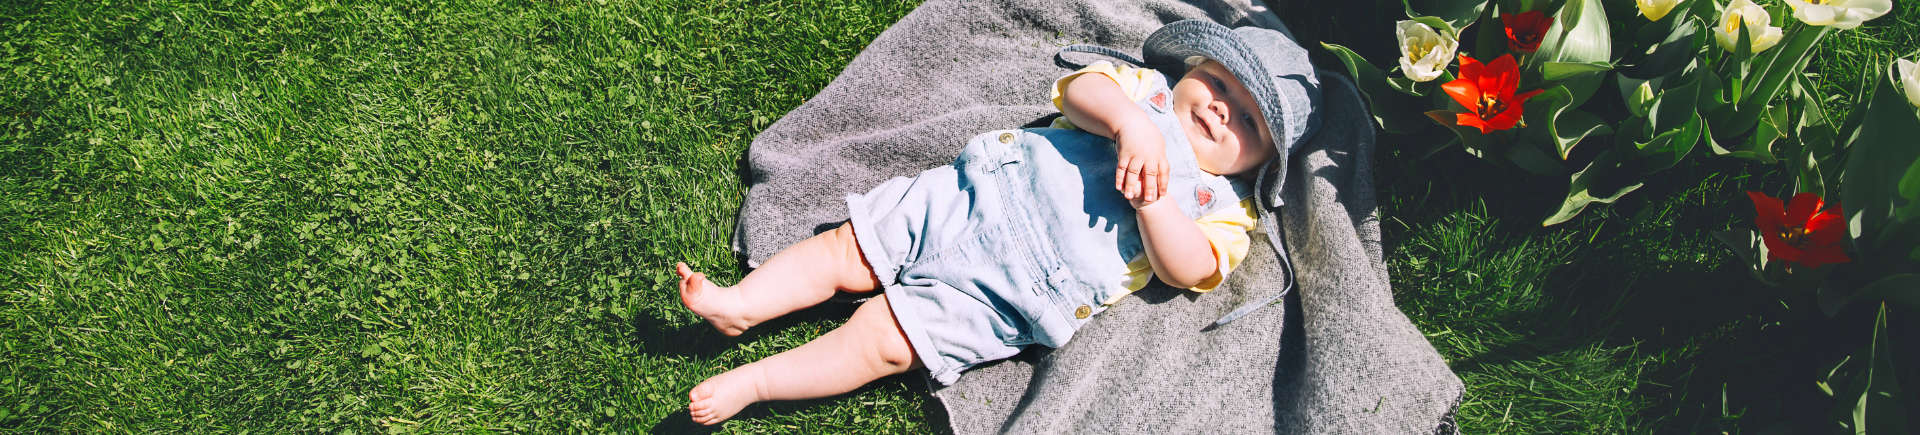 happy baby lying on a blanket placed on well-maintained grass in the garden